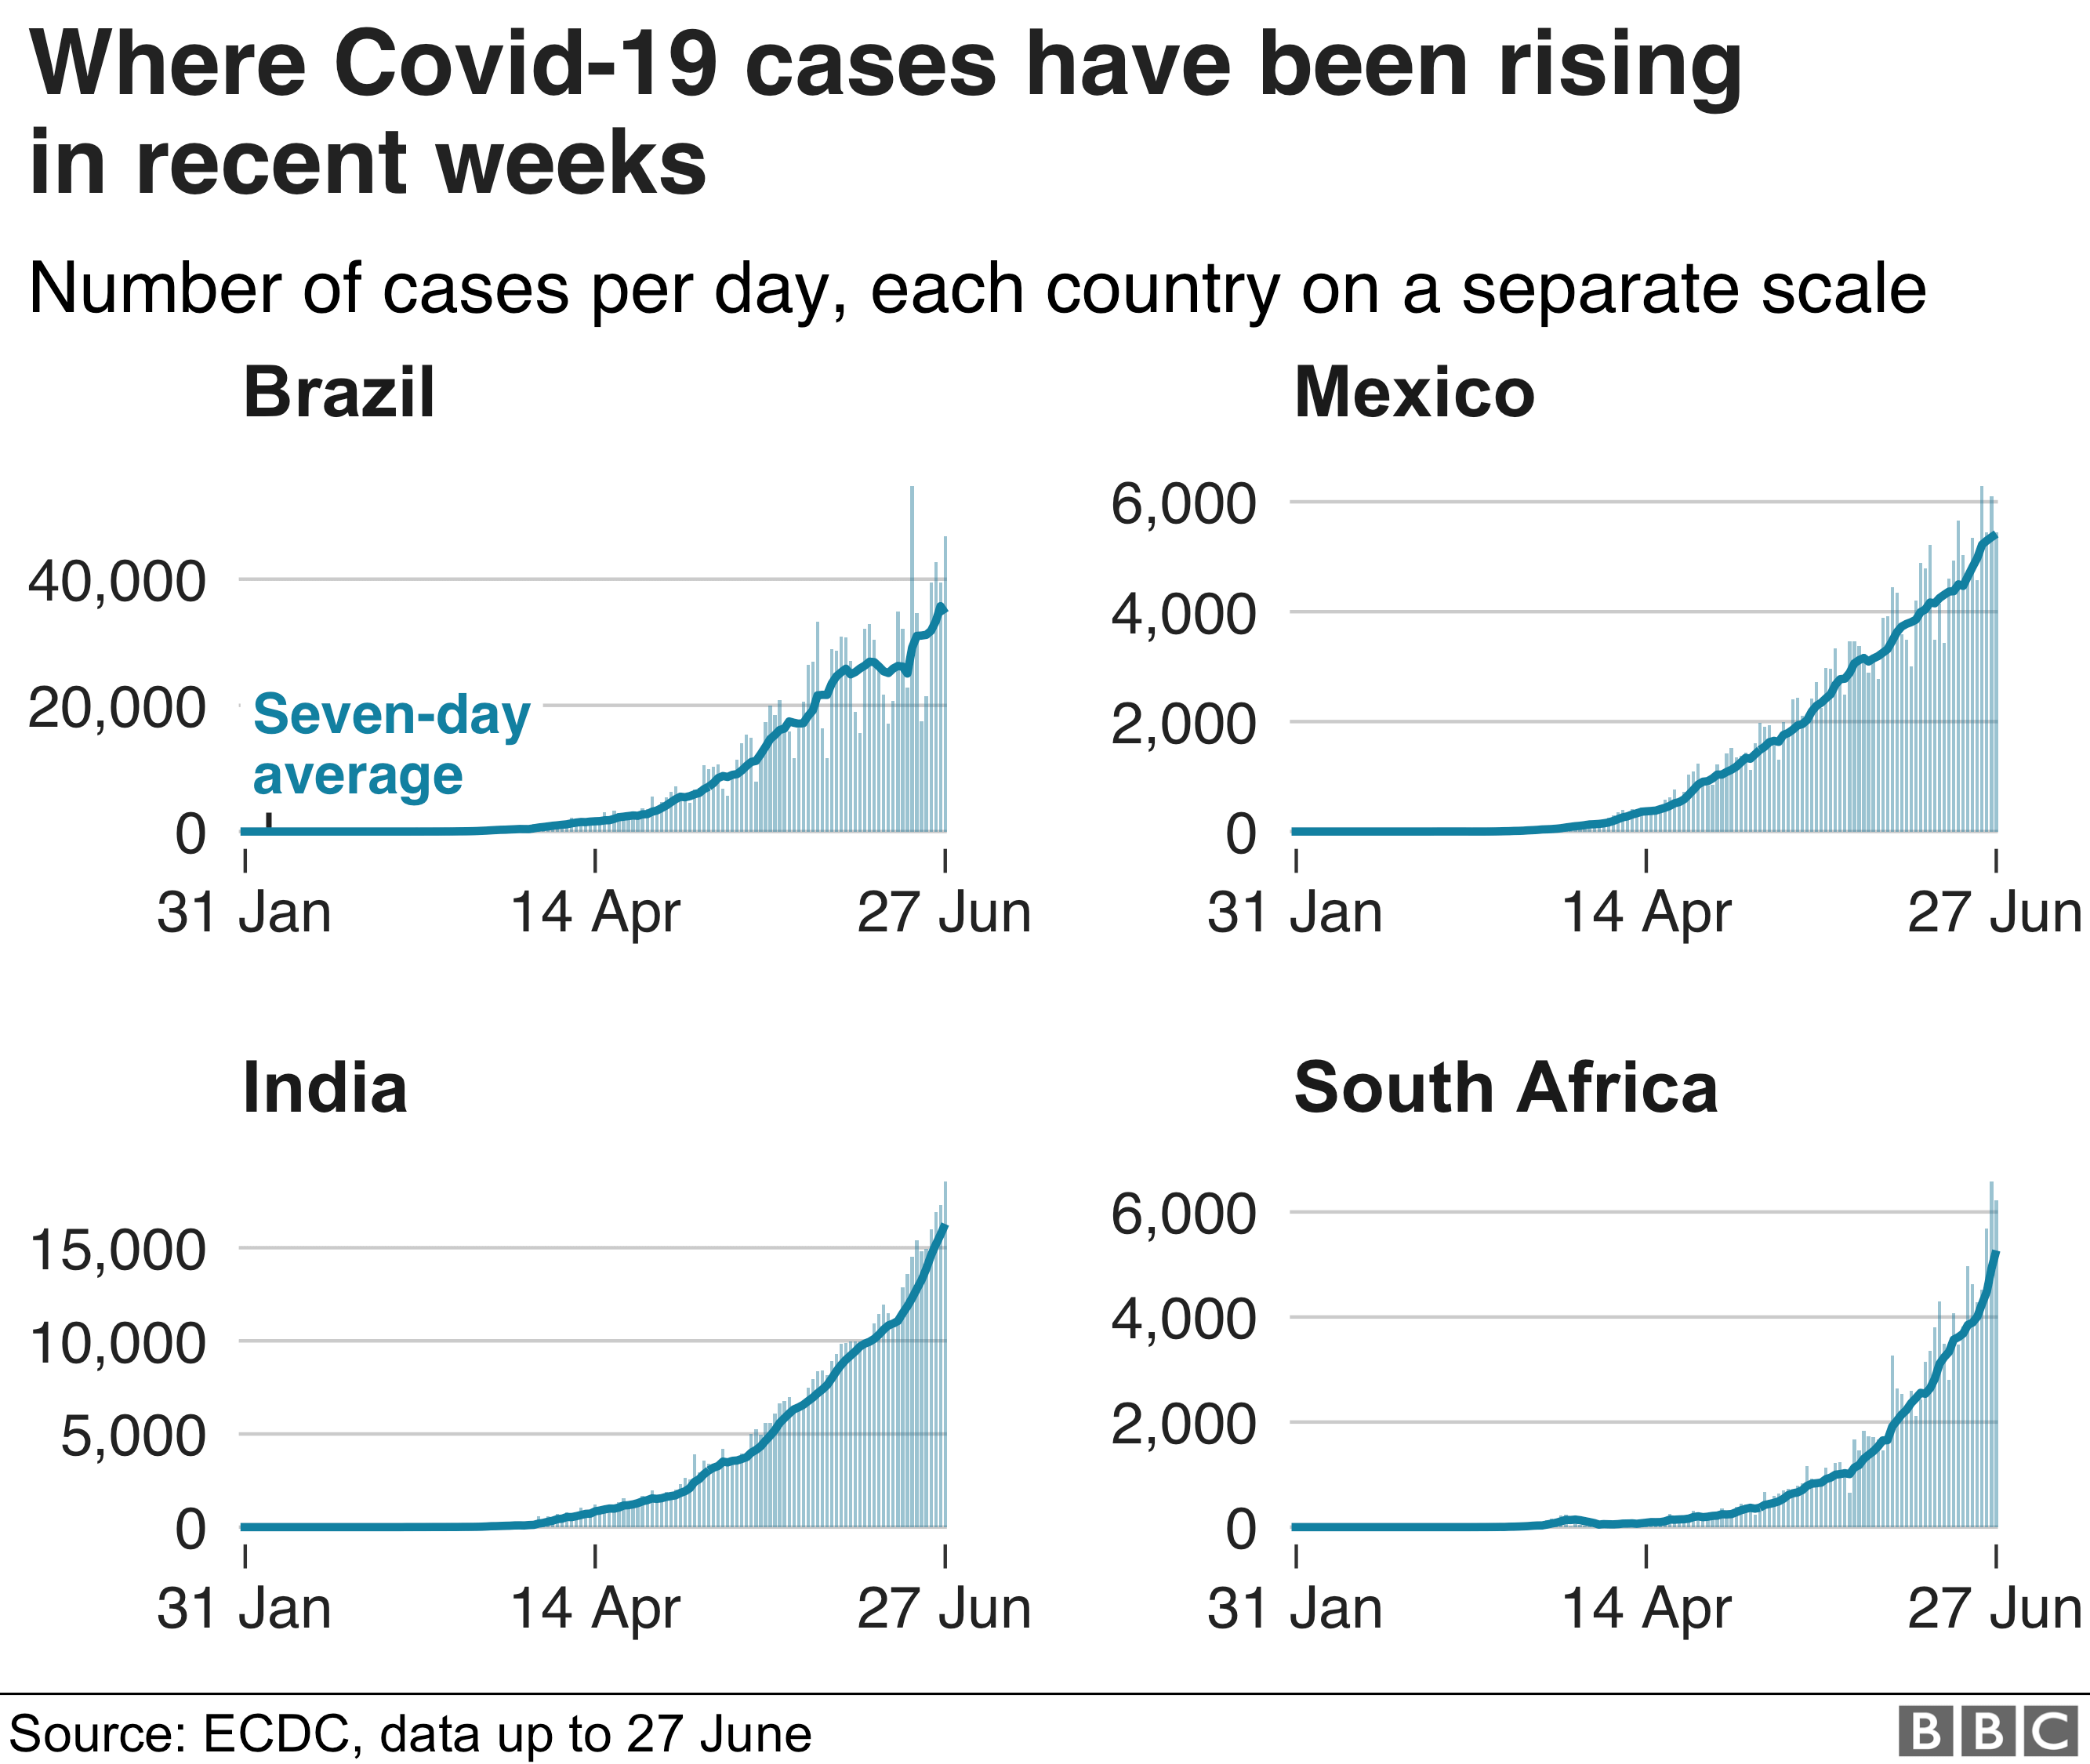 Graphs of coronavirus cases rising in Brazil, India. Mexico and South Africa